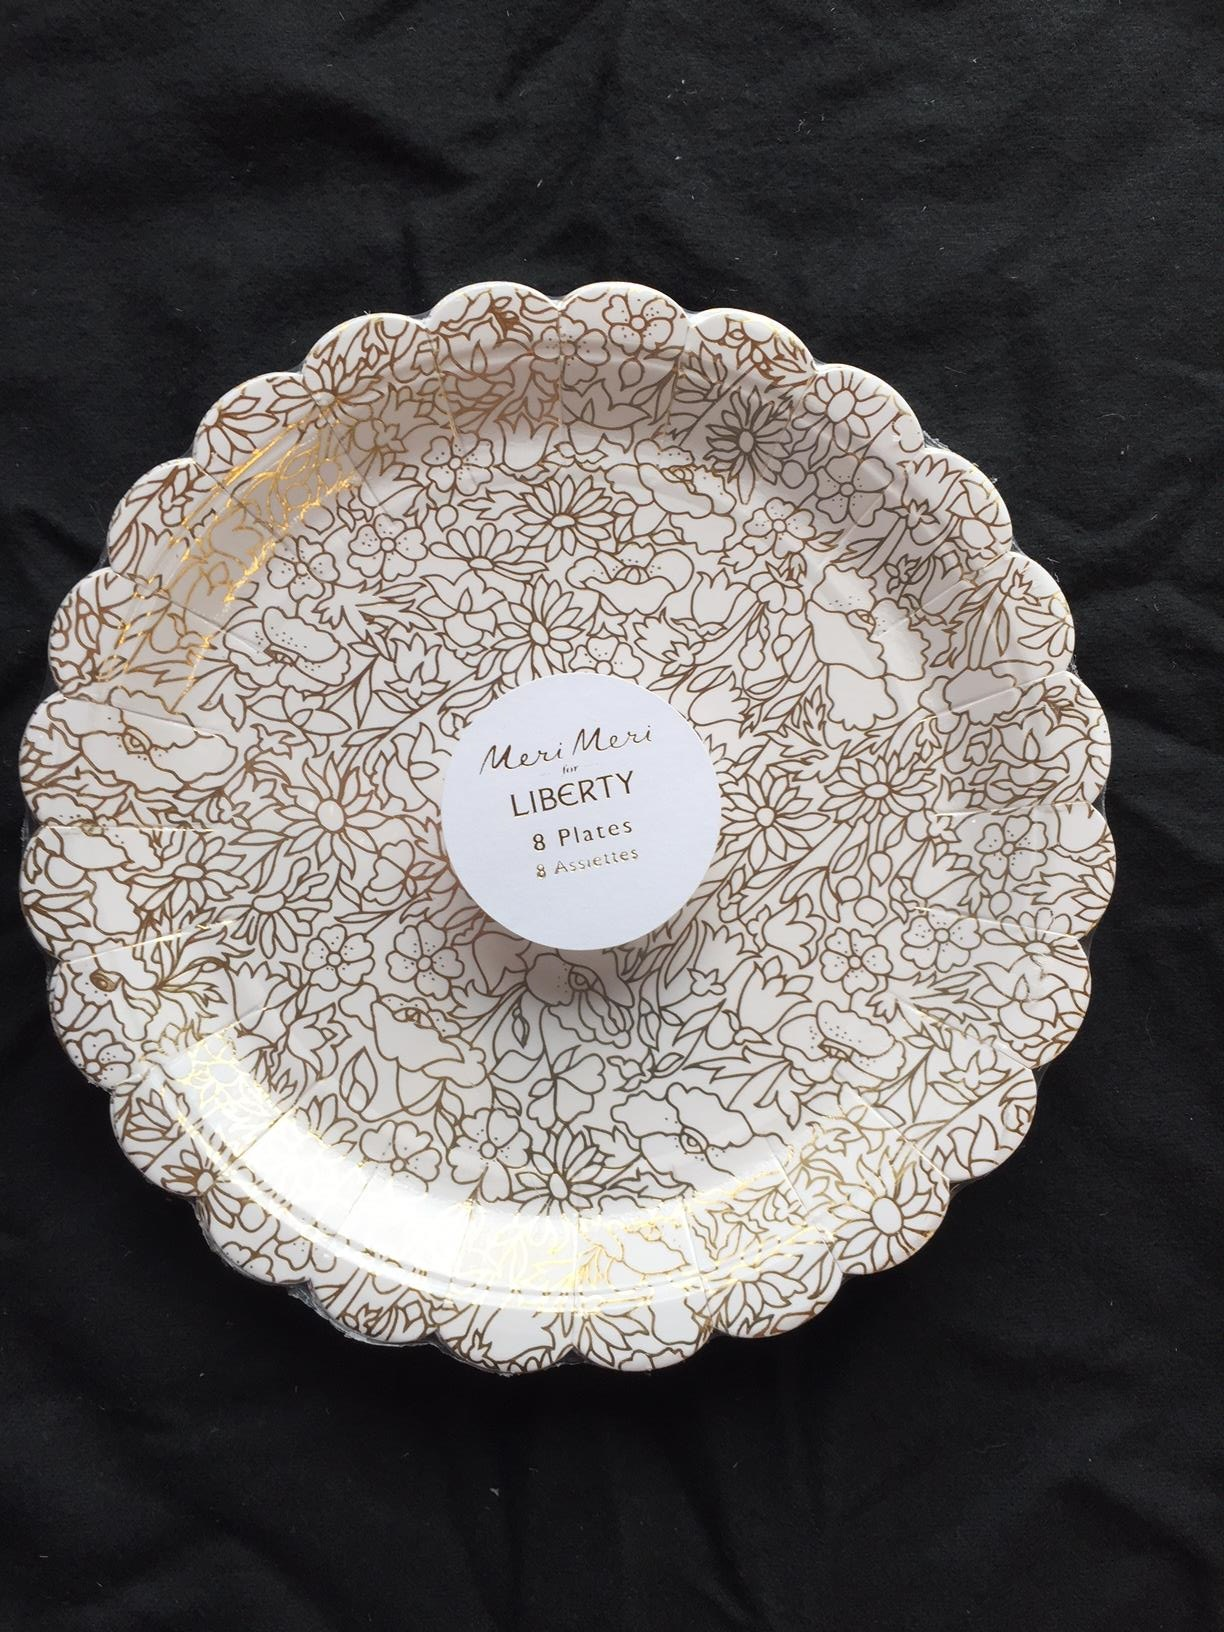 8 x Vintage Style Floral Paper Plates 18cm Scalloped Liberty Cream u0026 Gold Print & 8 x Vintage Style Floral Paper Plates 18cm Scalloped Liberty Cream ...